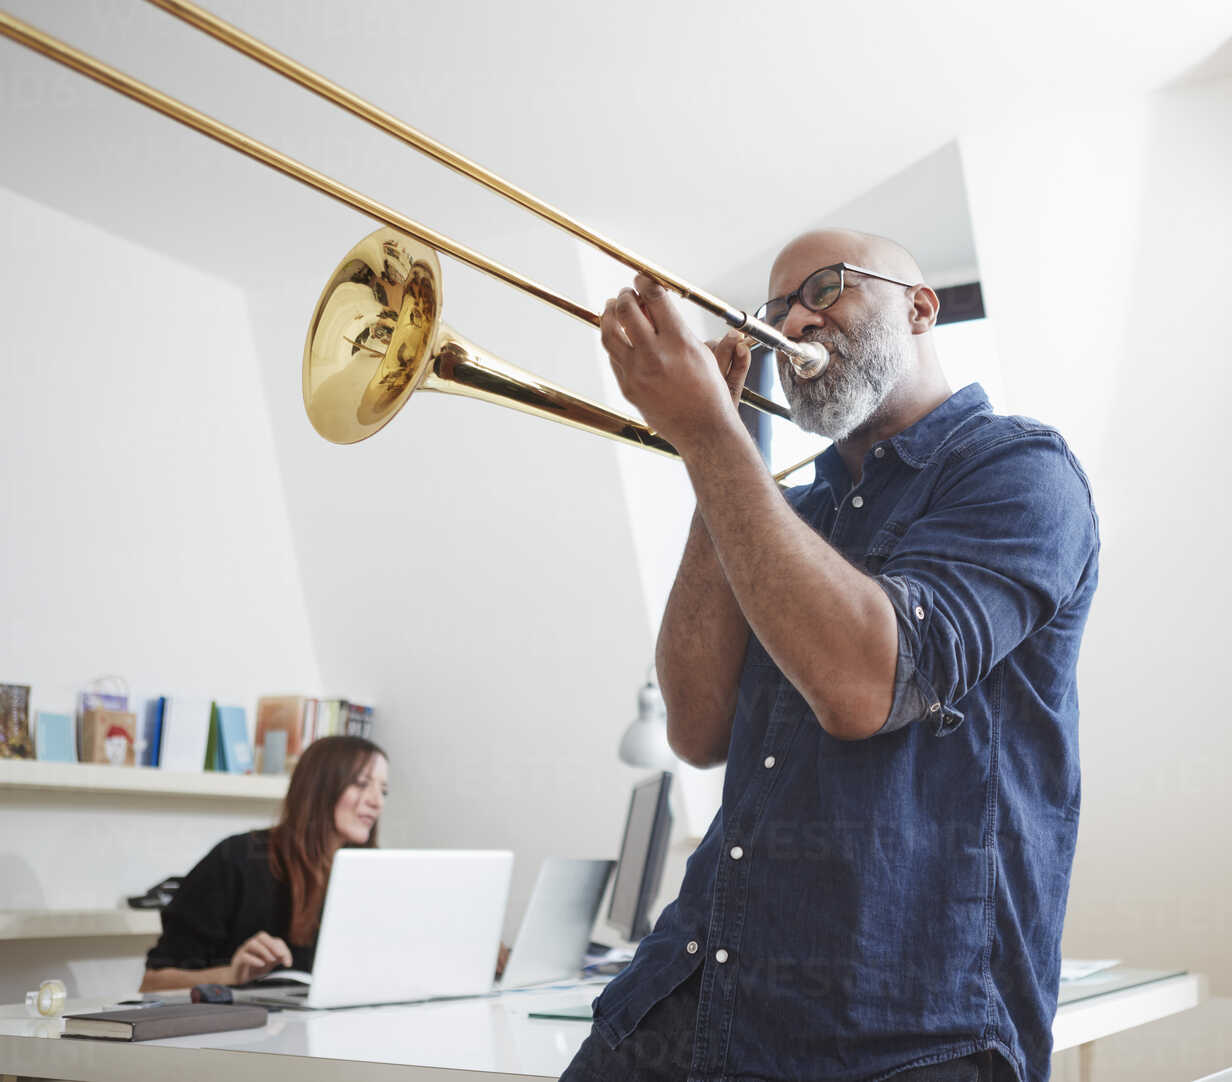 Man playing trombone at home office - RHF001148 - Rainer Holz/Westend61